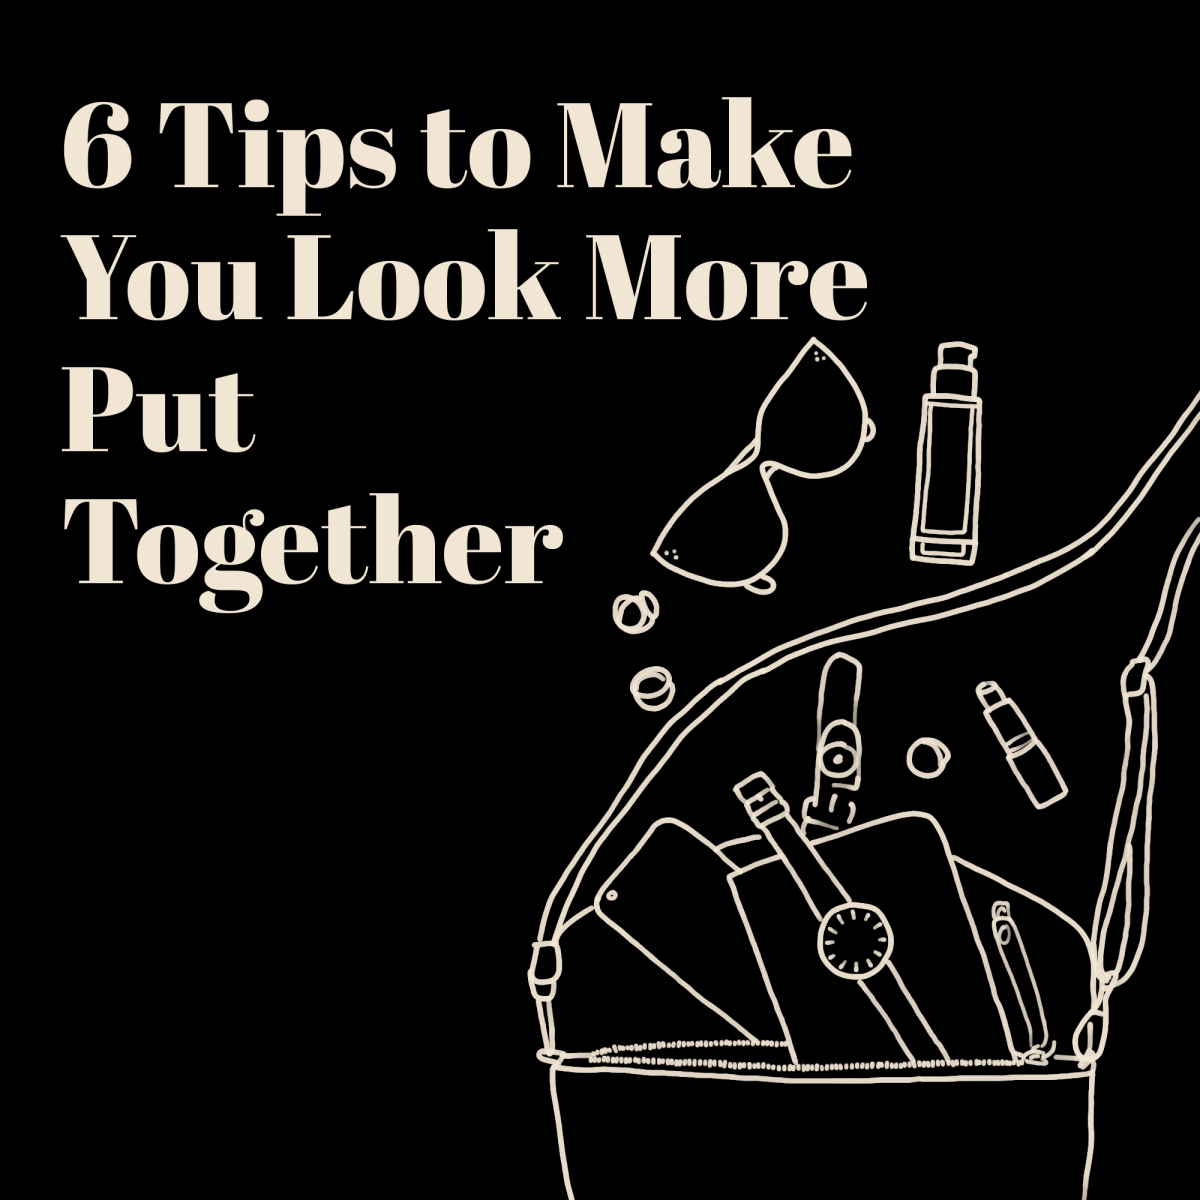 """A line art drawing of a bag with a watch, journal, and phone spilling out of it. Around the bag is a bottle of foundation, a tube of lipstick, a pair of sunglasses, and a few rings. The words """"6 Tips to Make You Look More Put Together"""" are written at the top of the image."""